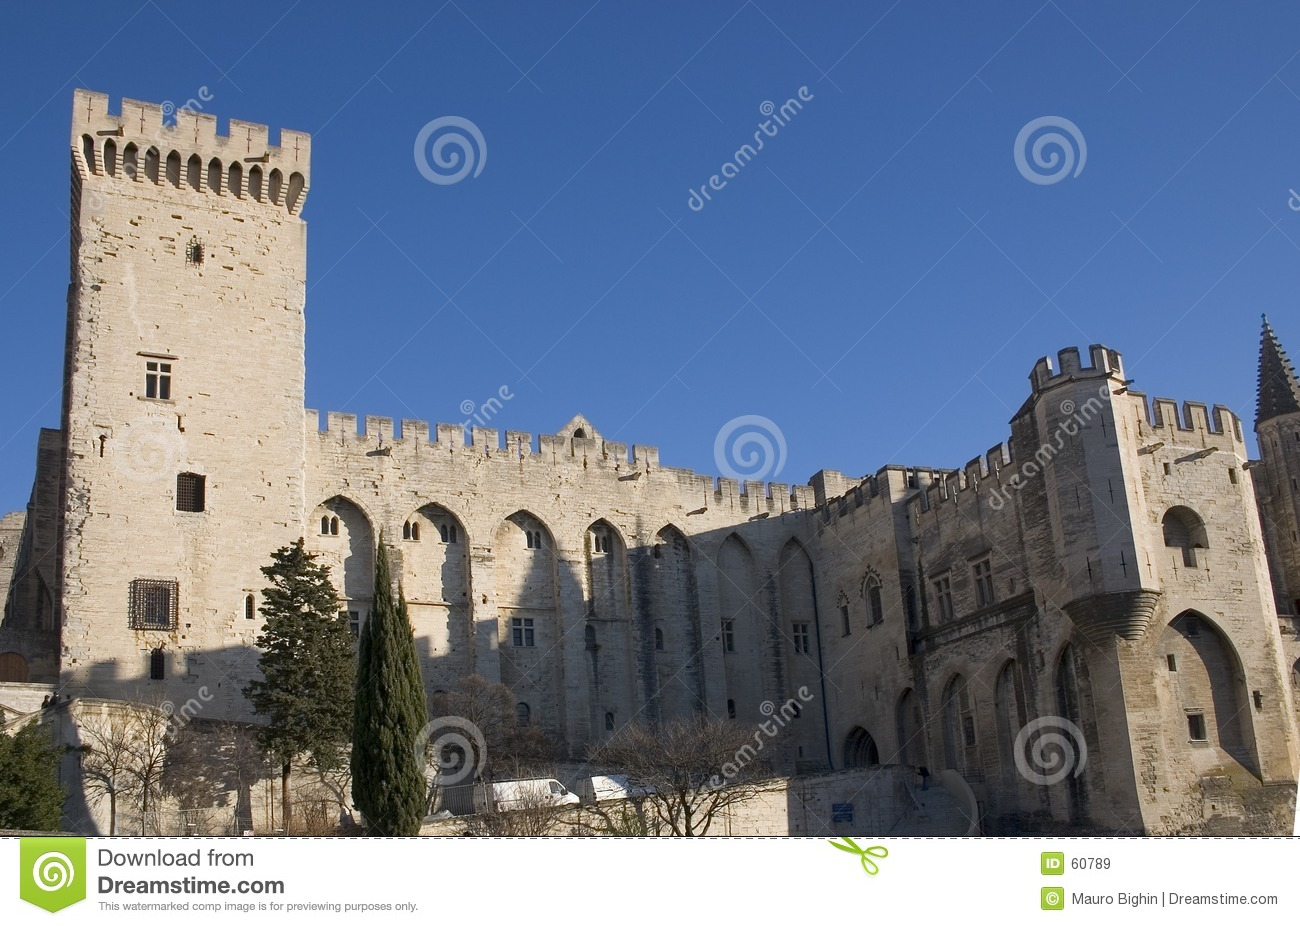 Download Palace - Avignon - France De Papes Image stock - Image du touriste, historique: 60789